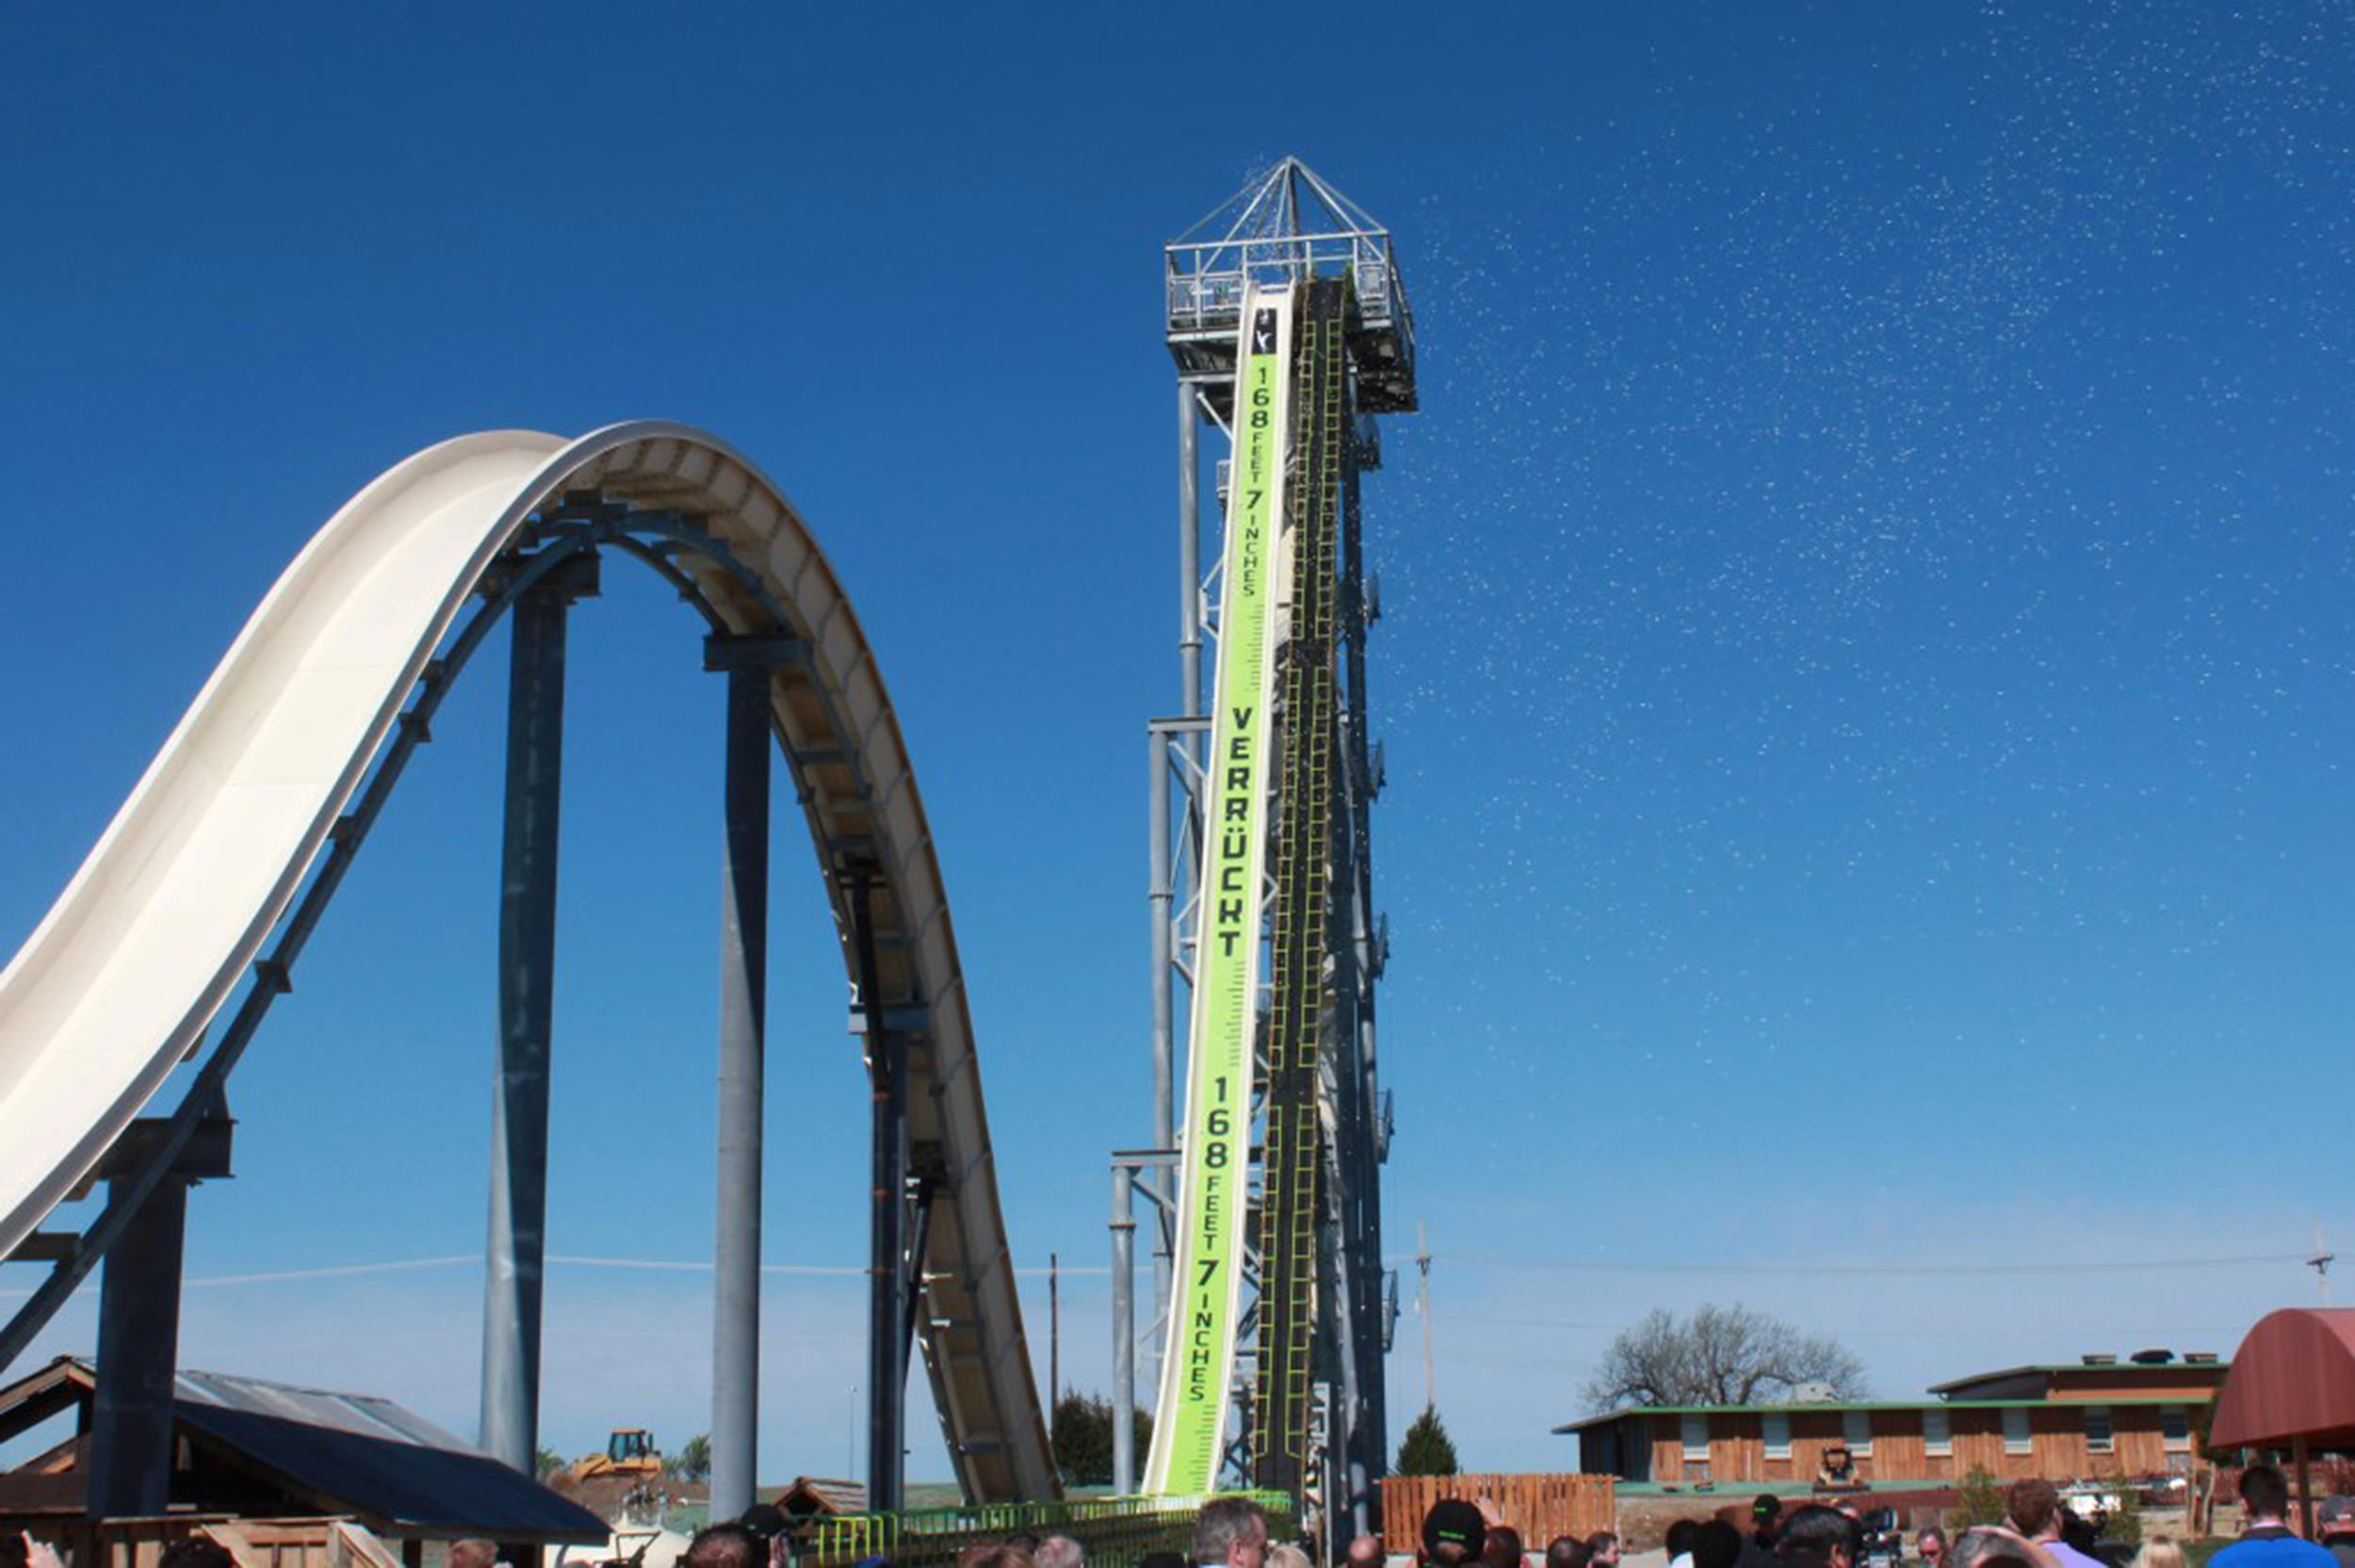 Image: Verrückt, which takes its name from the German word for insane, is 17 stories tall and sends riders on a 65-mph descent that includes a water-powered blast up and over a second, 50-foot hill.